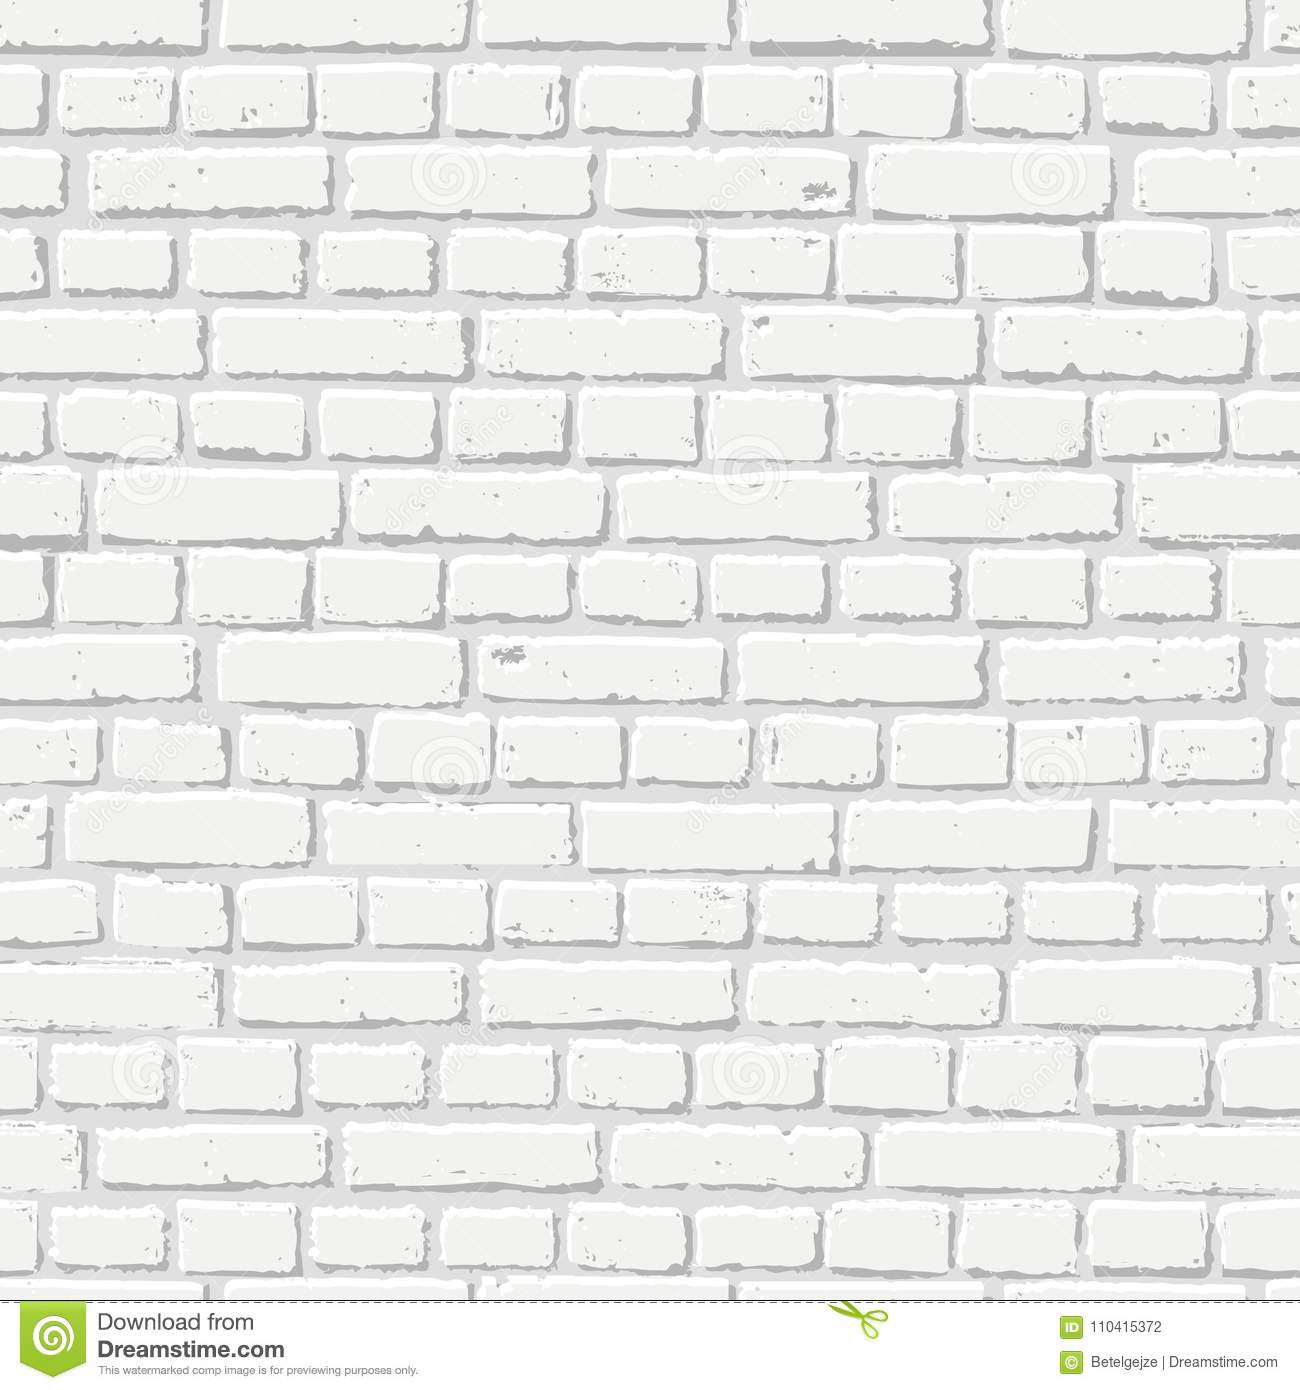 White Brick Wall Seamless Texture Stock Illustrations 4 191 White Brick Wall Seamless Texture Stock Illustrations Vectors Clipart Dreamstime